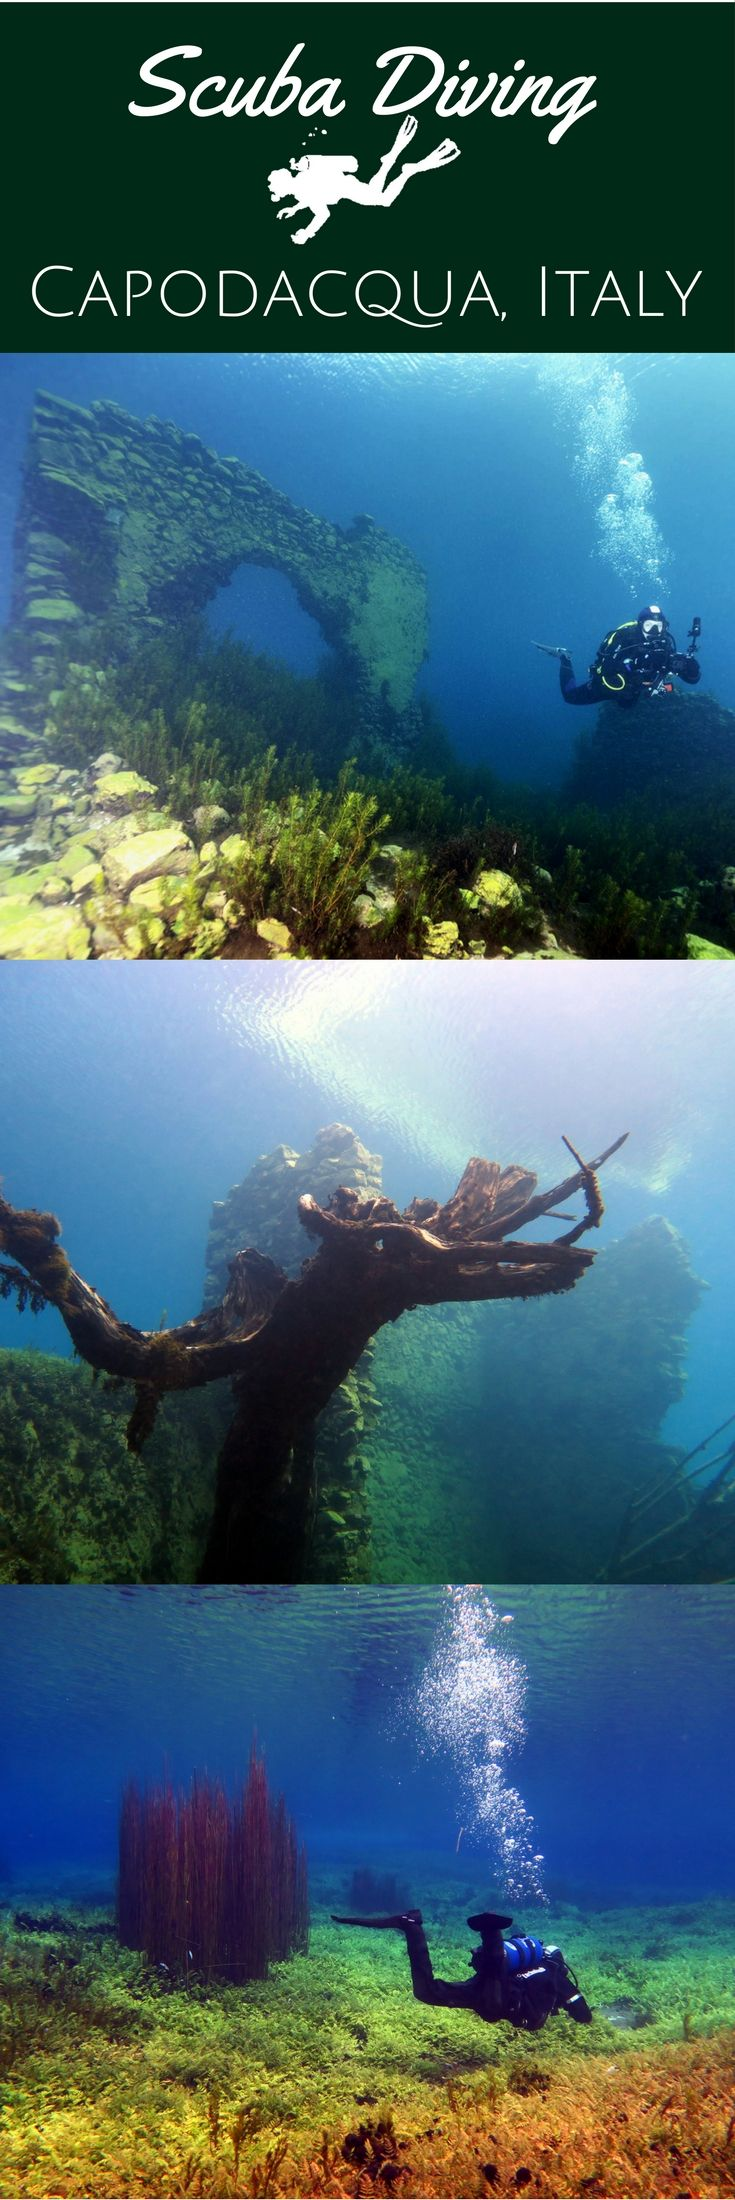 See Rome & Dive in Capo d'Acqua, Italy - Scuba diving in Capodacqua Lake submerged medieval village & visiting Rome - World Adventure Divers